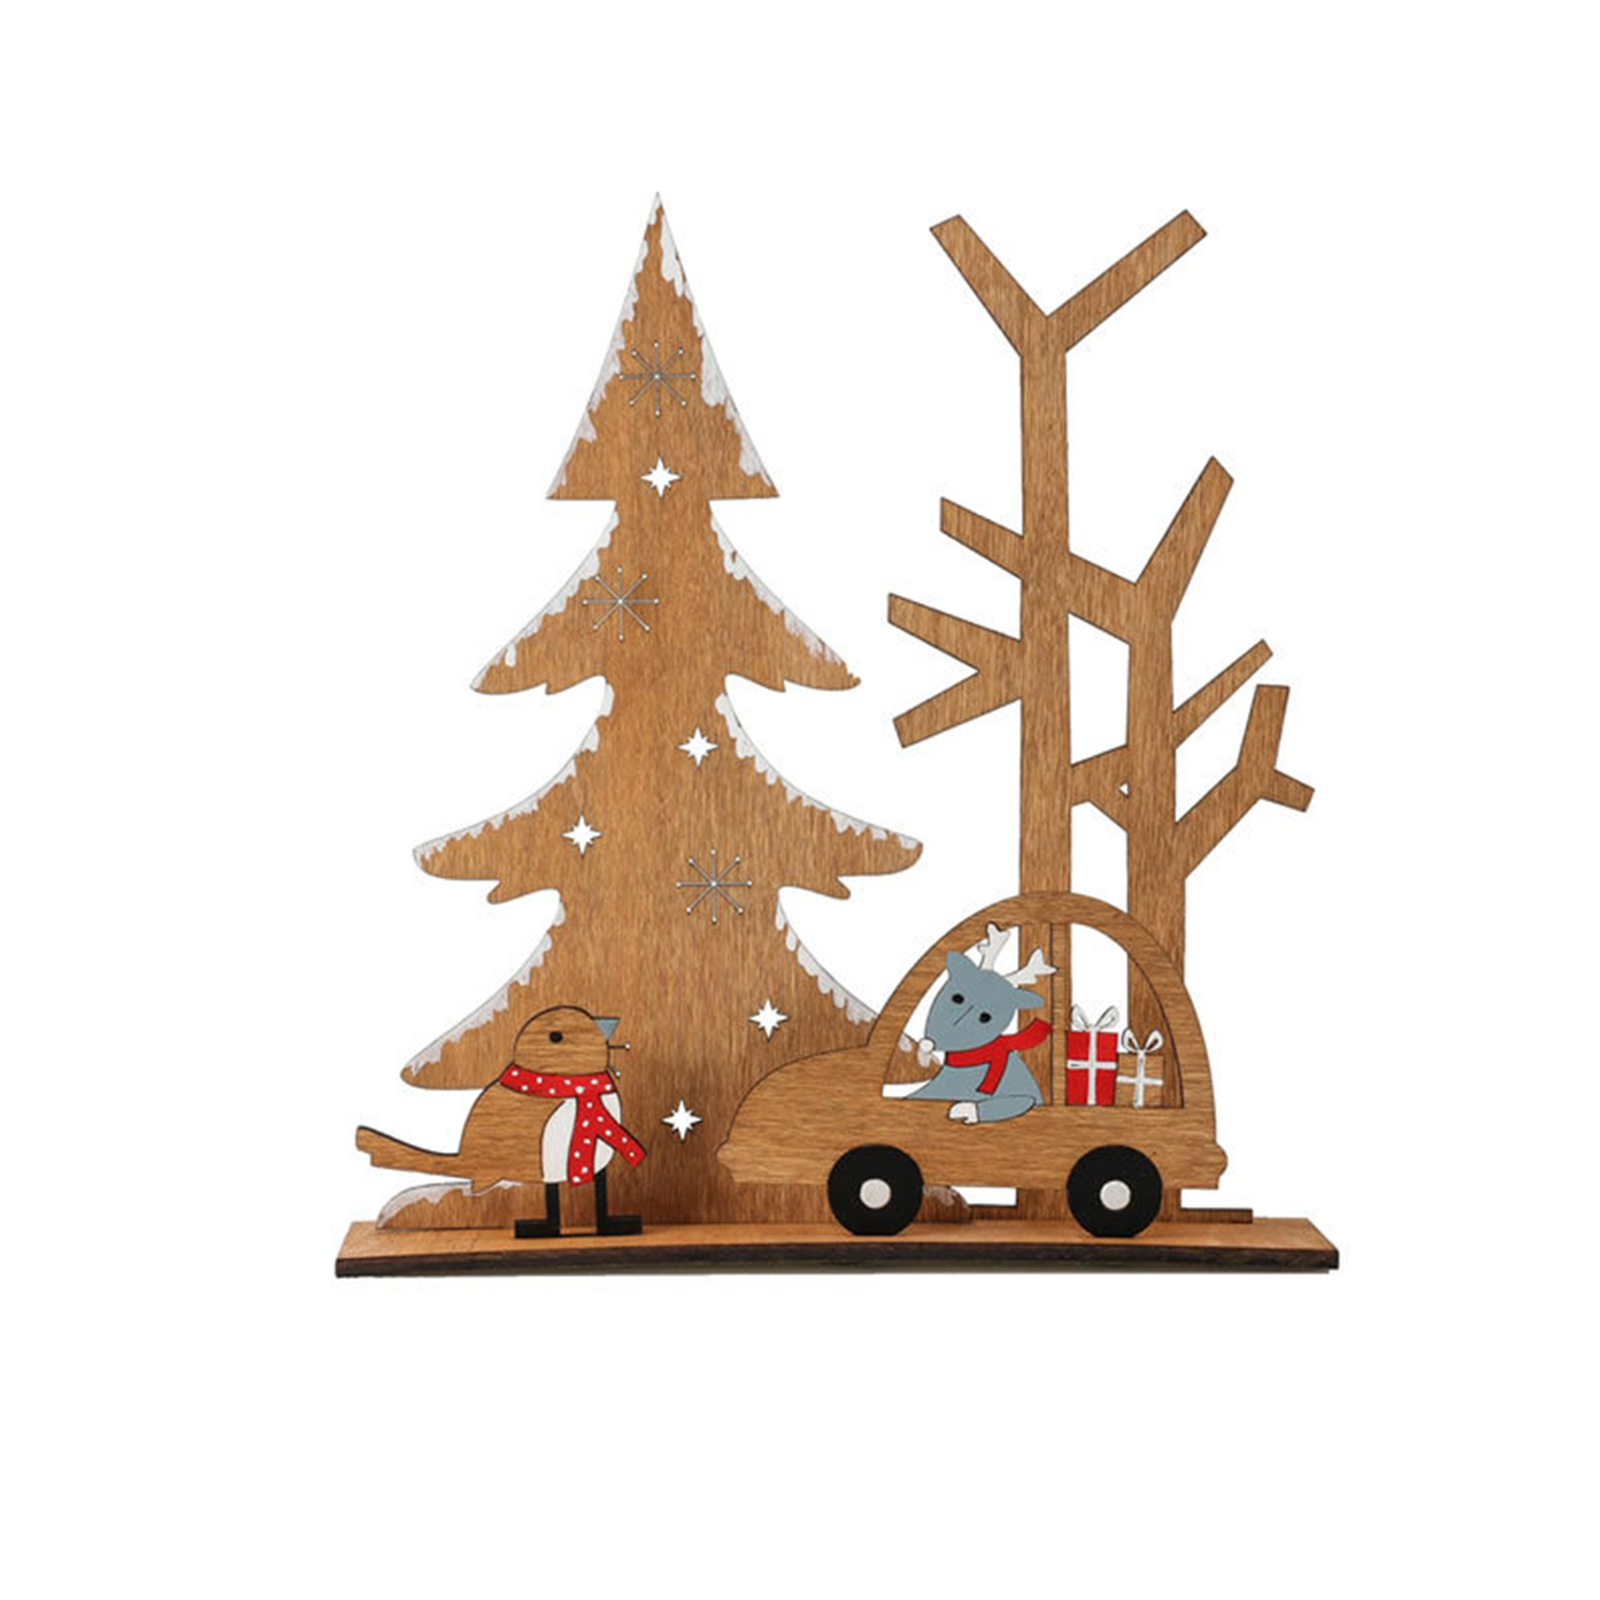 Details about  /Xmas Tree Wooden Ornaments Table Decoration Merry Christmas Christmas Ornament